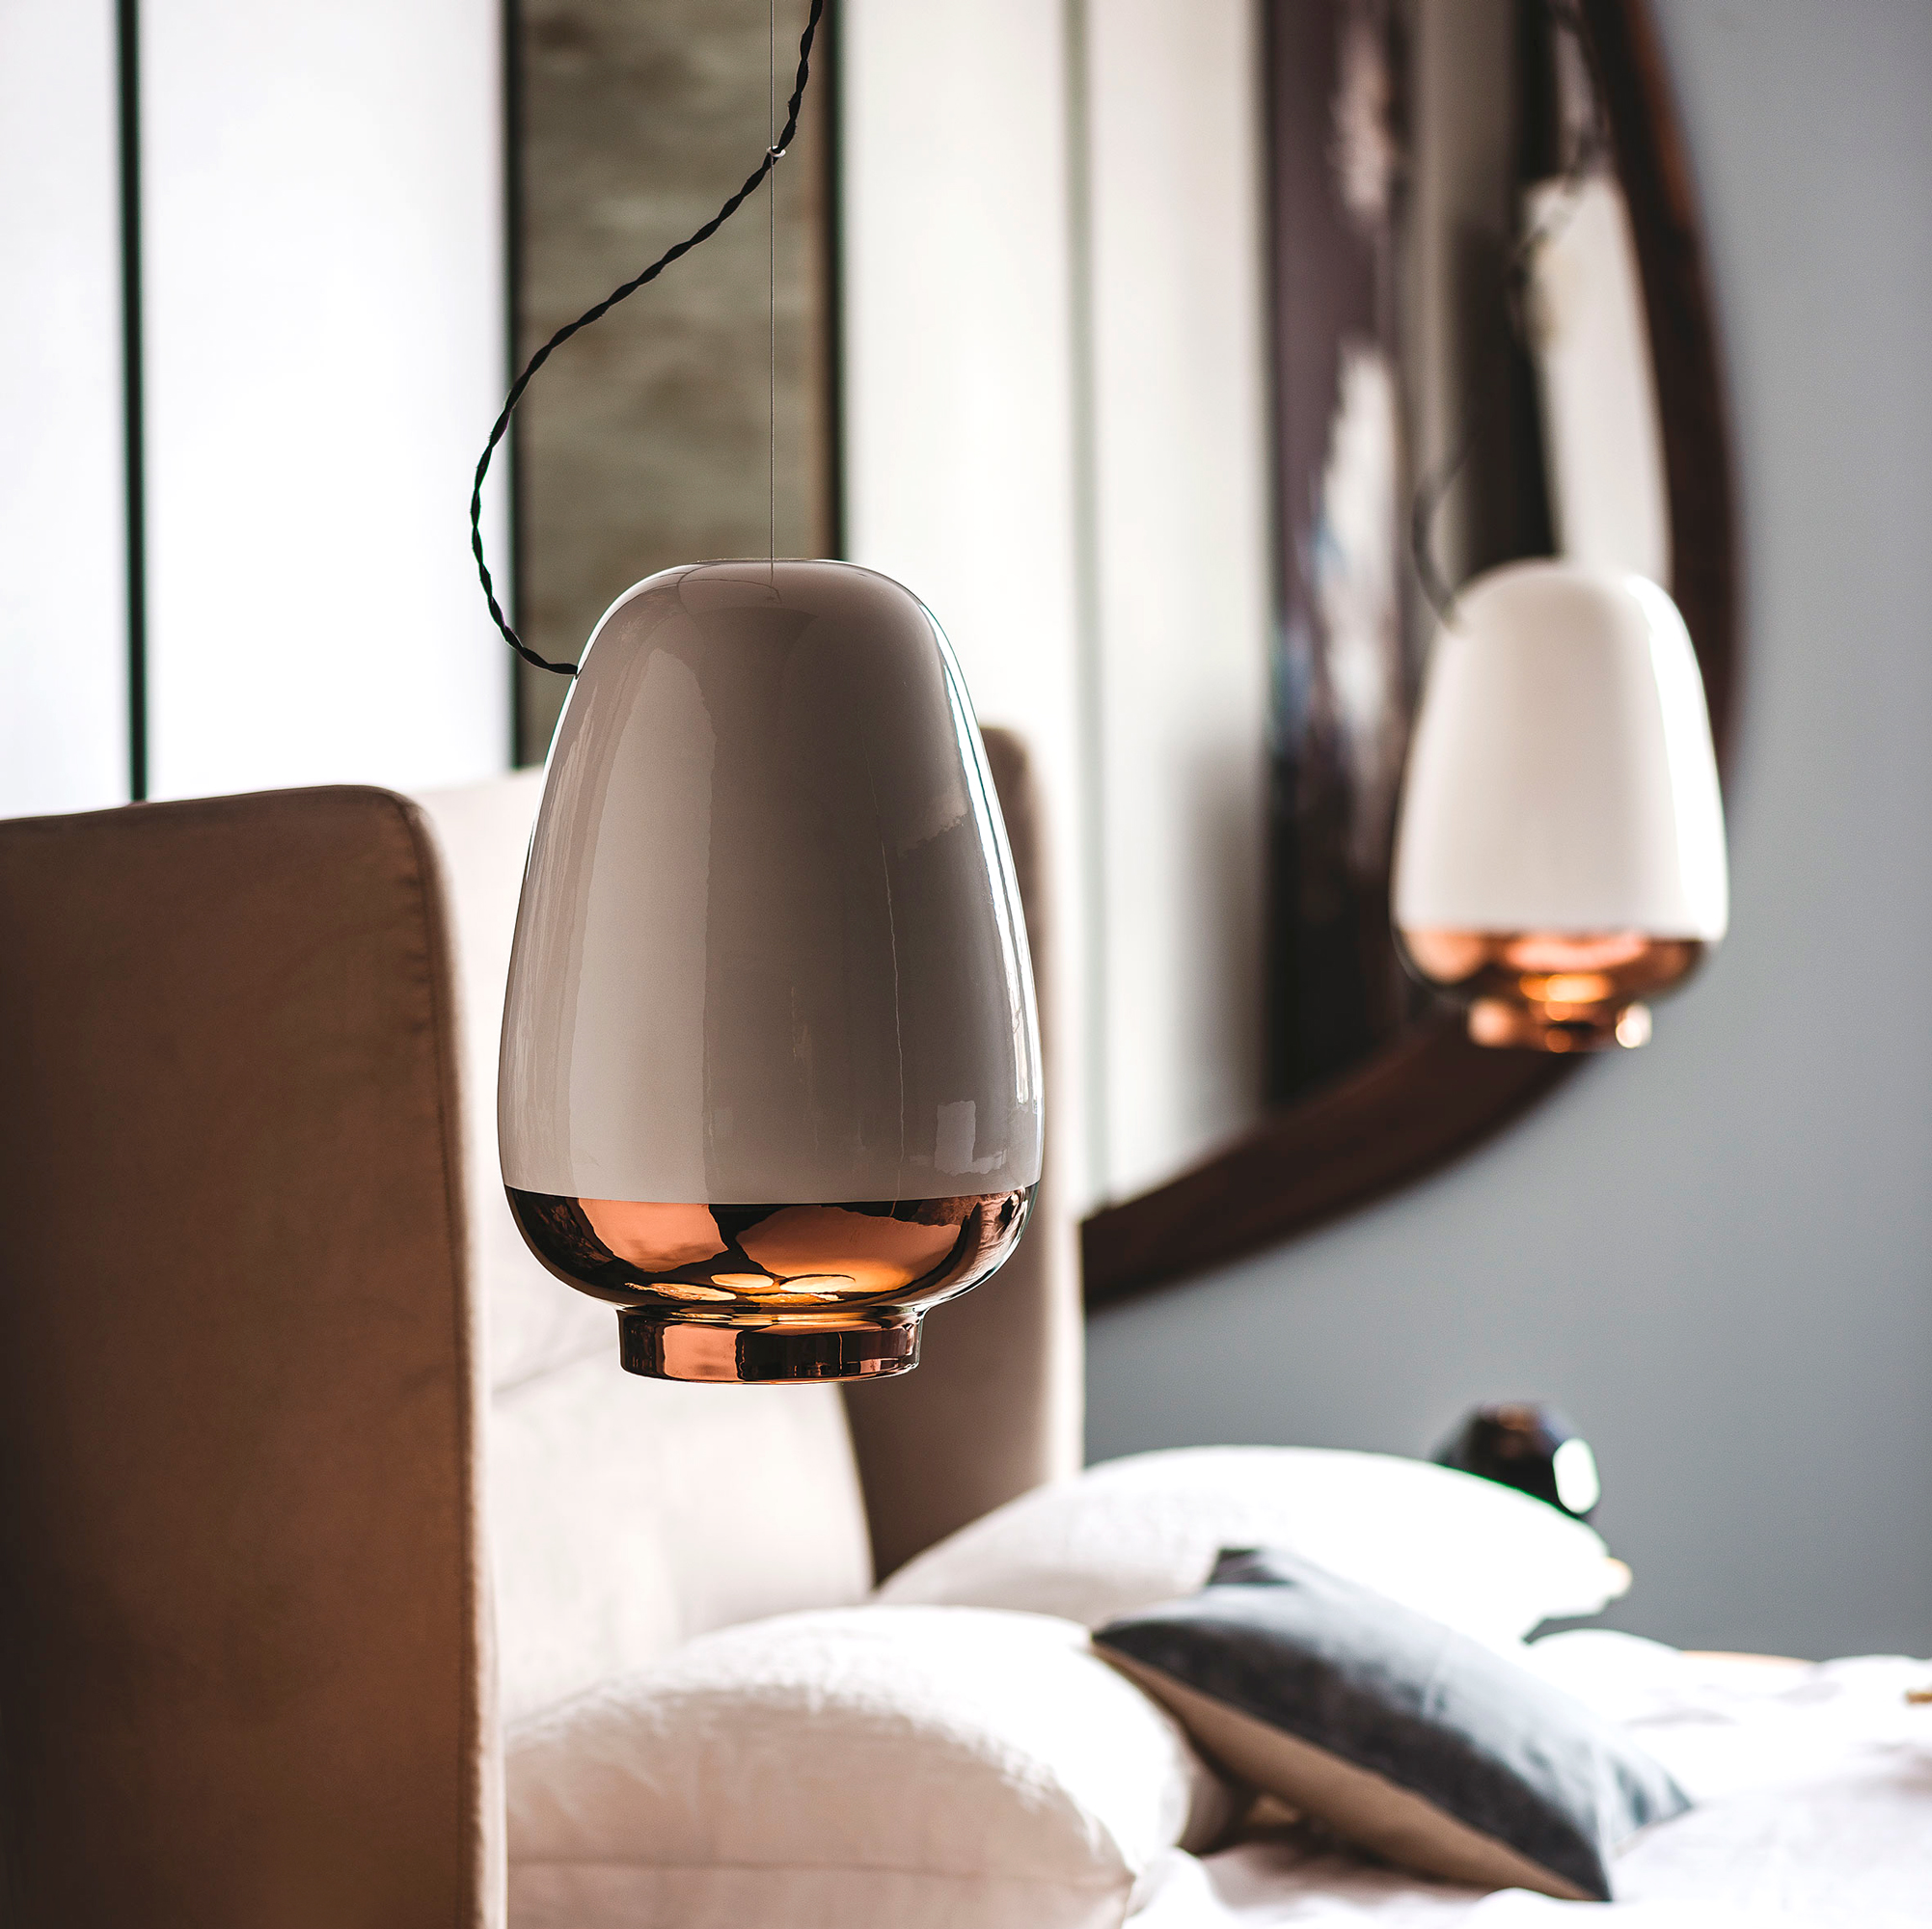 contemporary italian designer asia suspension lamp italian designer luxury furniture at cassoni. Black Bedroom Furniture Sets. Home Design Ideas